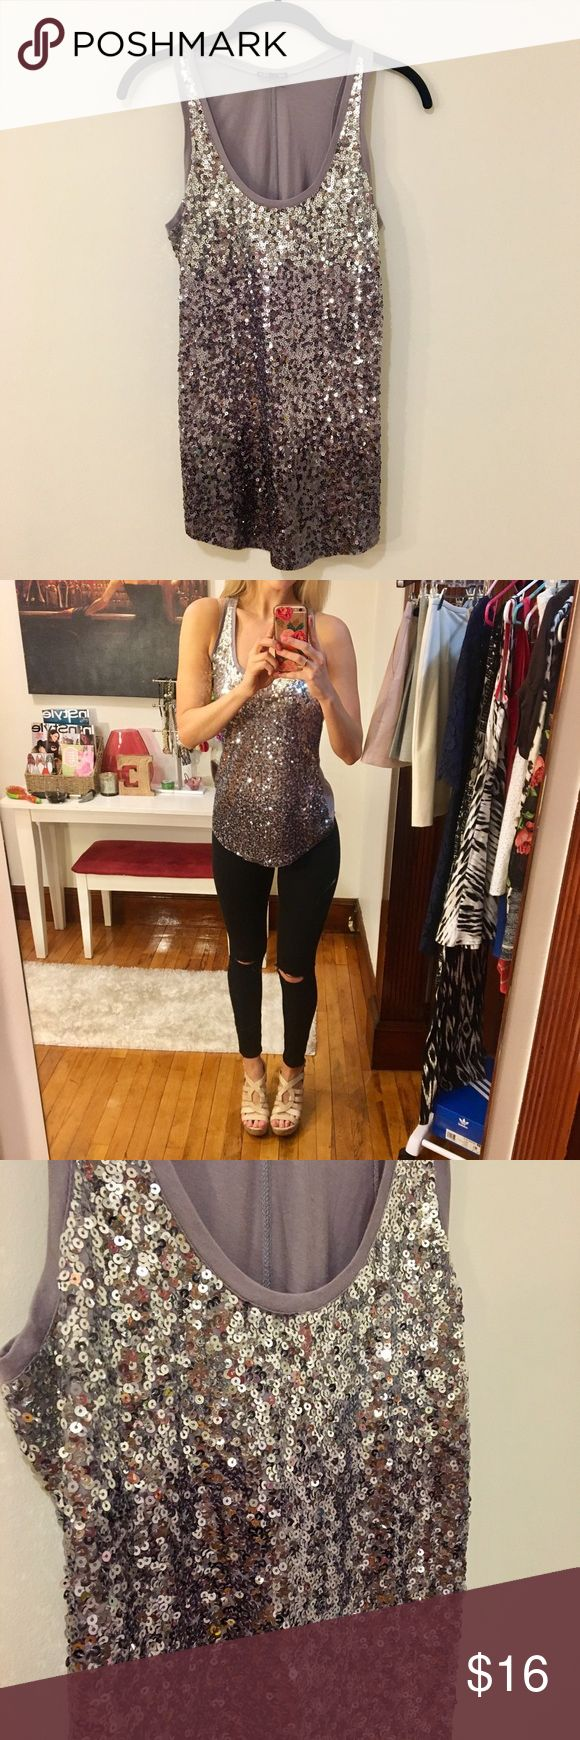 Purple Sequin Tank Top Fun light purple sequin top. Makes a great party or birthday outfit. Looks great with skinny jeans and wedges or heels. Express Tops Tank Tops